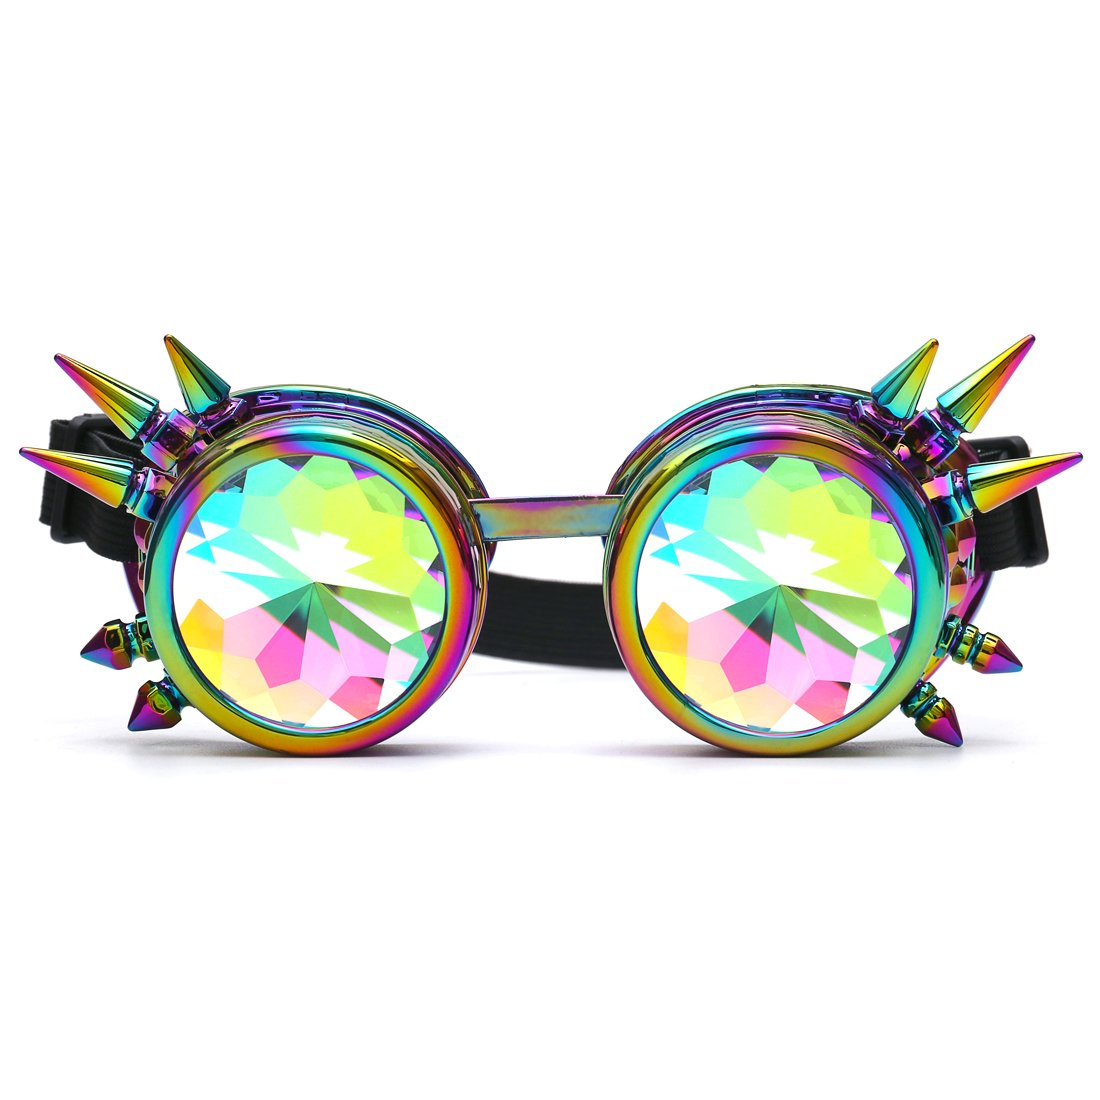 Careonline Vintage STEAMPUNK GOGGLES&Glasses Bling Lens Rustic Goth COSPLAY PARTY Rivets